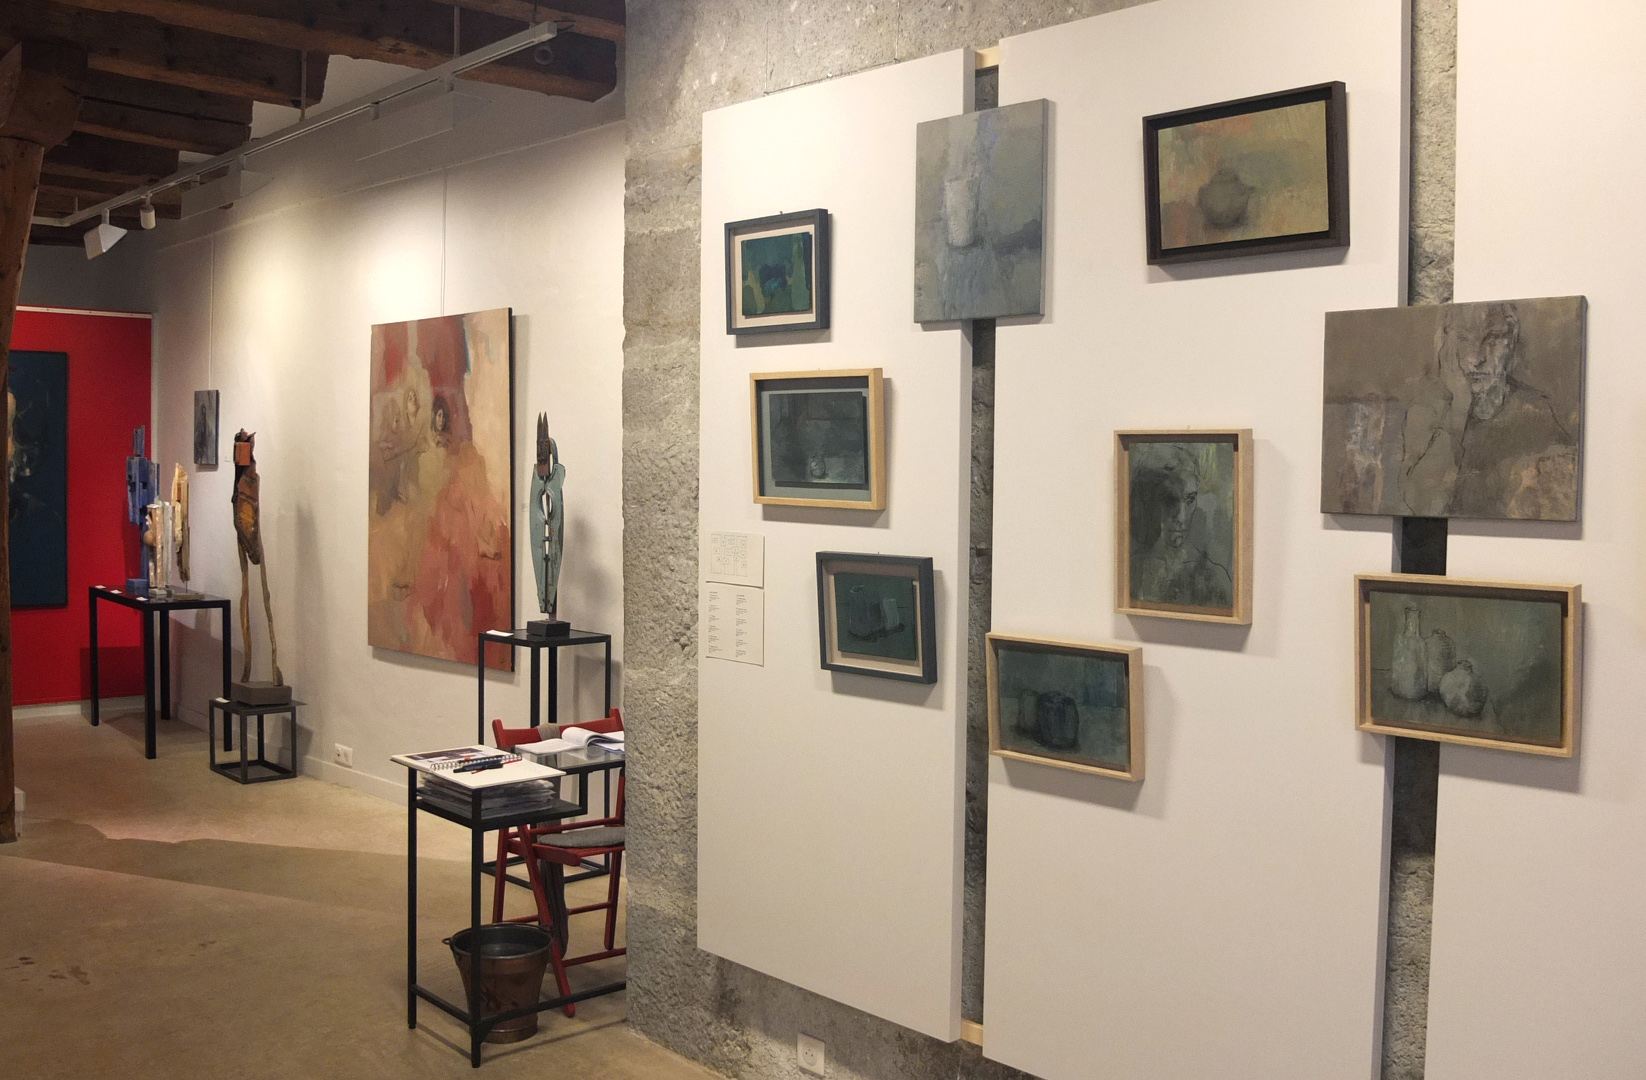 Galerie Ruffieux-Bril, Chambéry, 2019